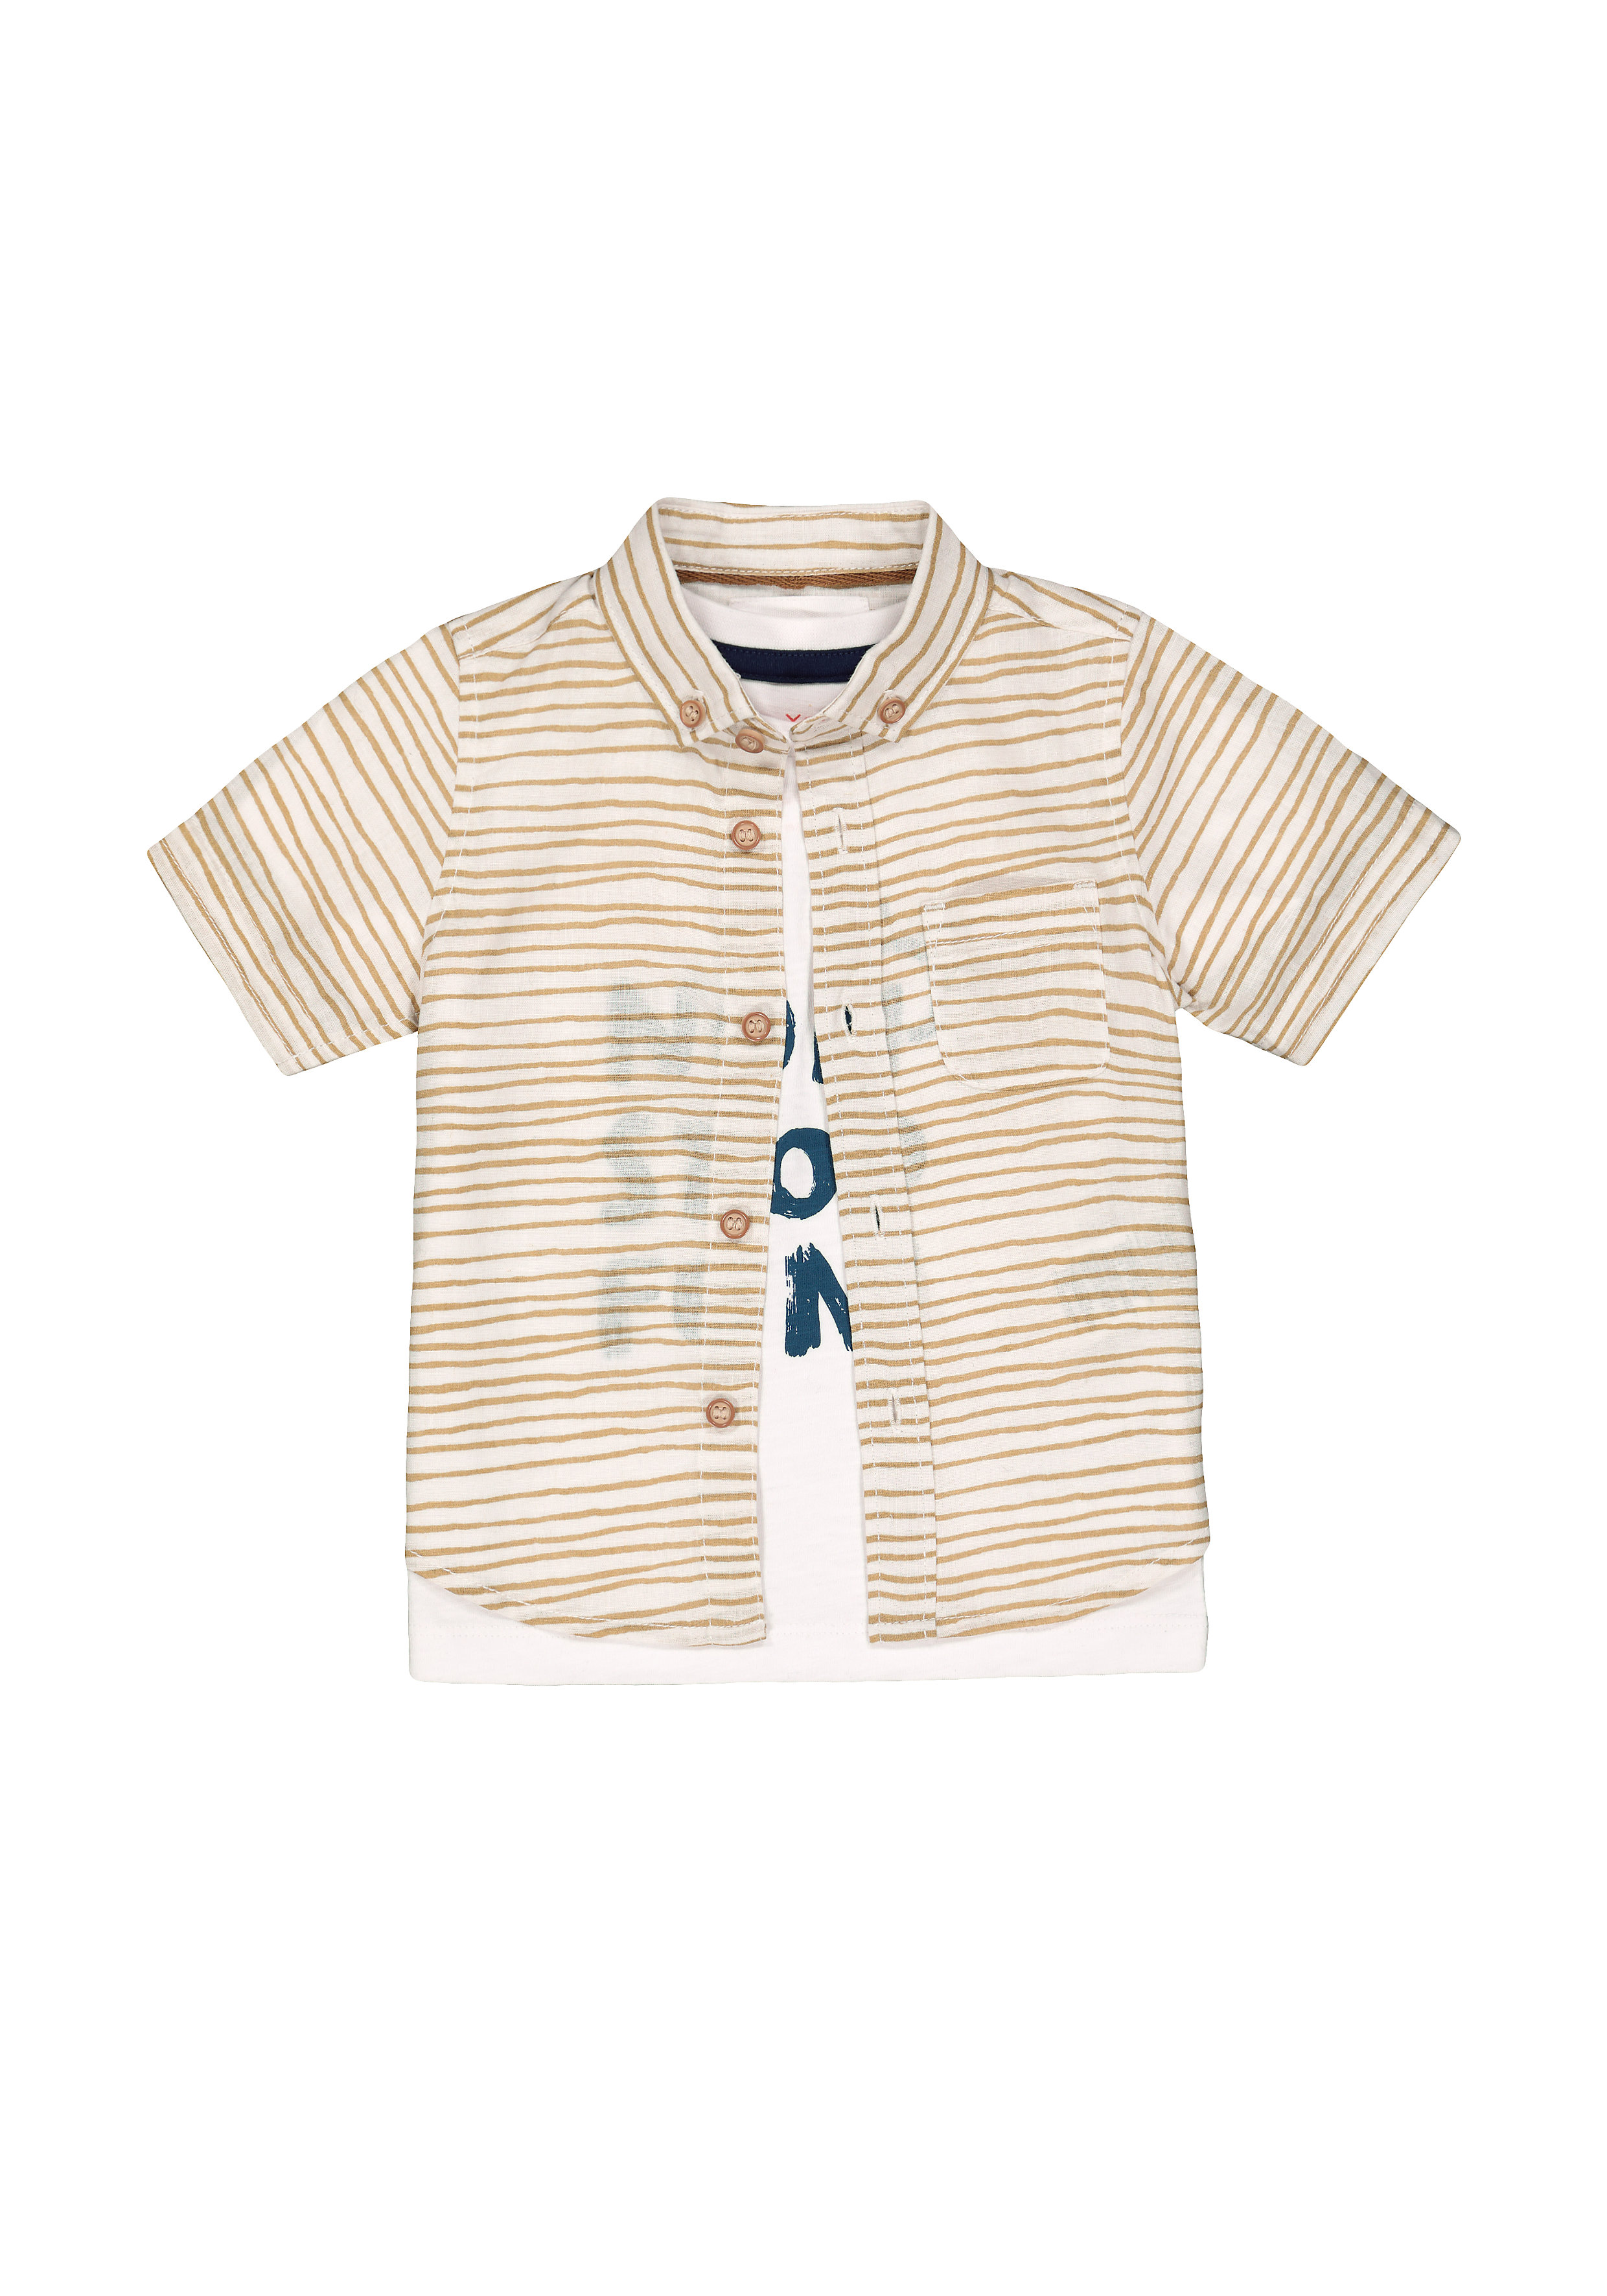 Mothercare | Boys Half Sleeves Shirt And T-Shirt Set Stripe Text Print - White Beige